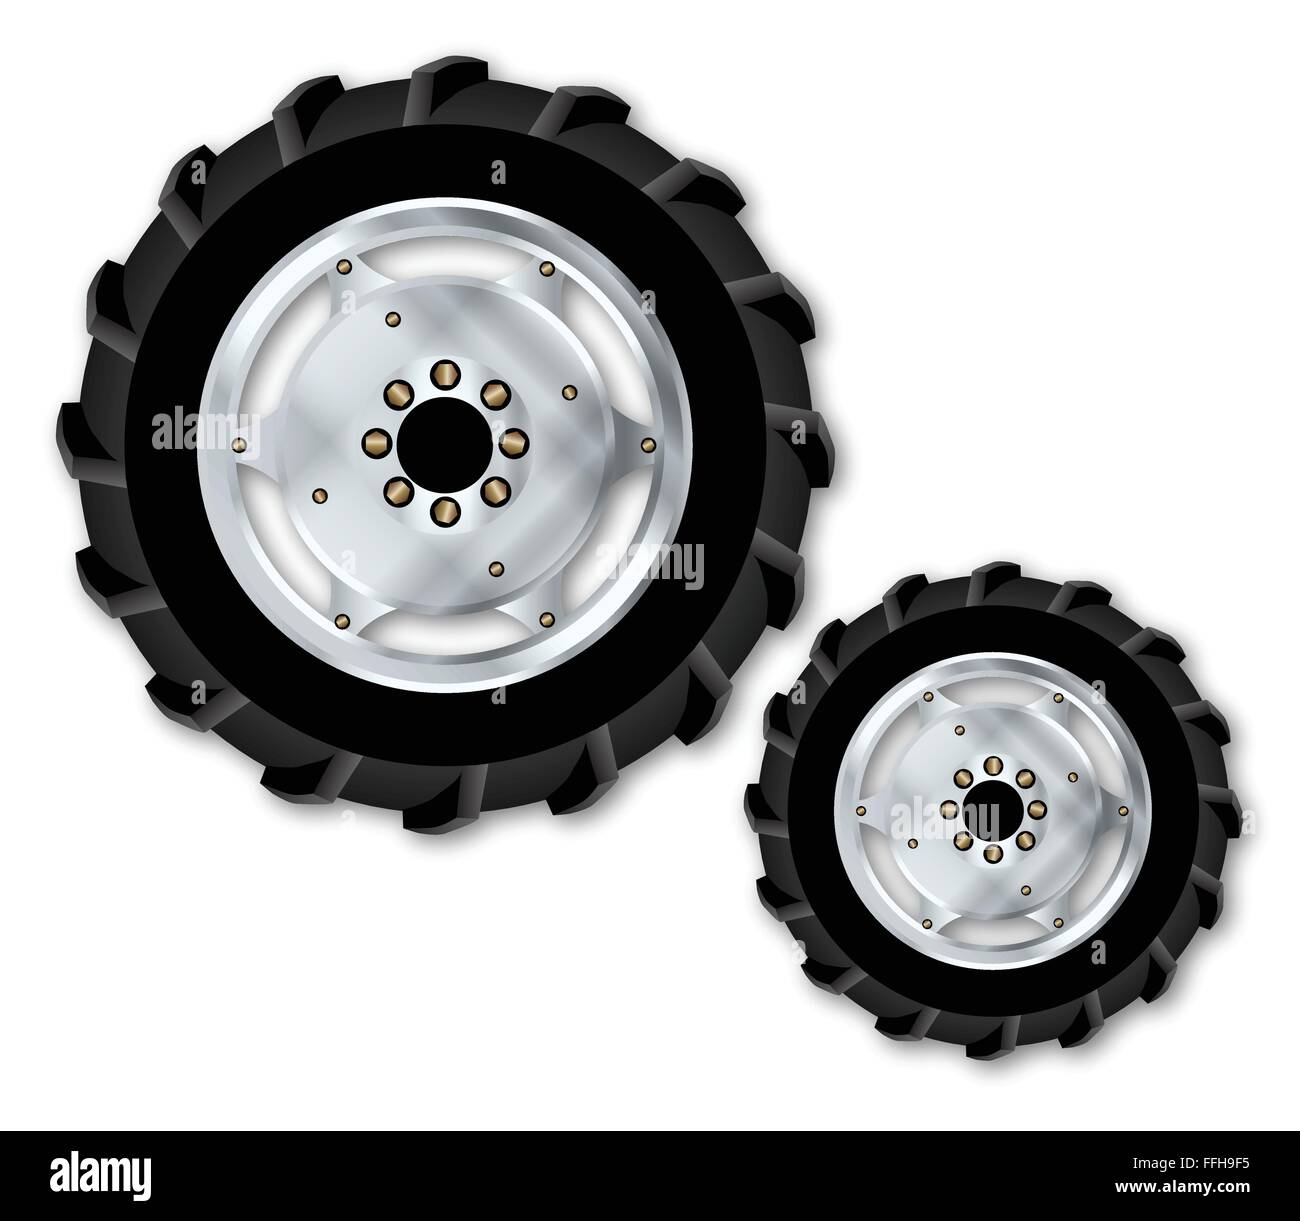 Front and rear wheels from a typical tractor over a white background - Stock Vector